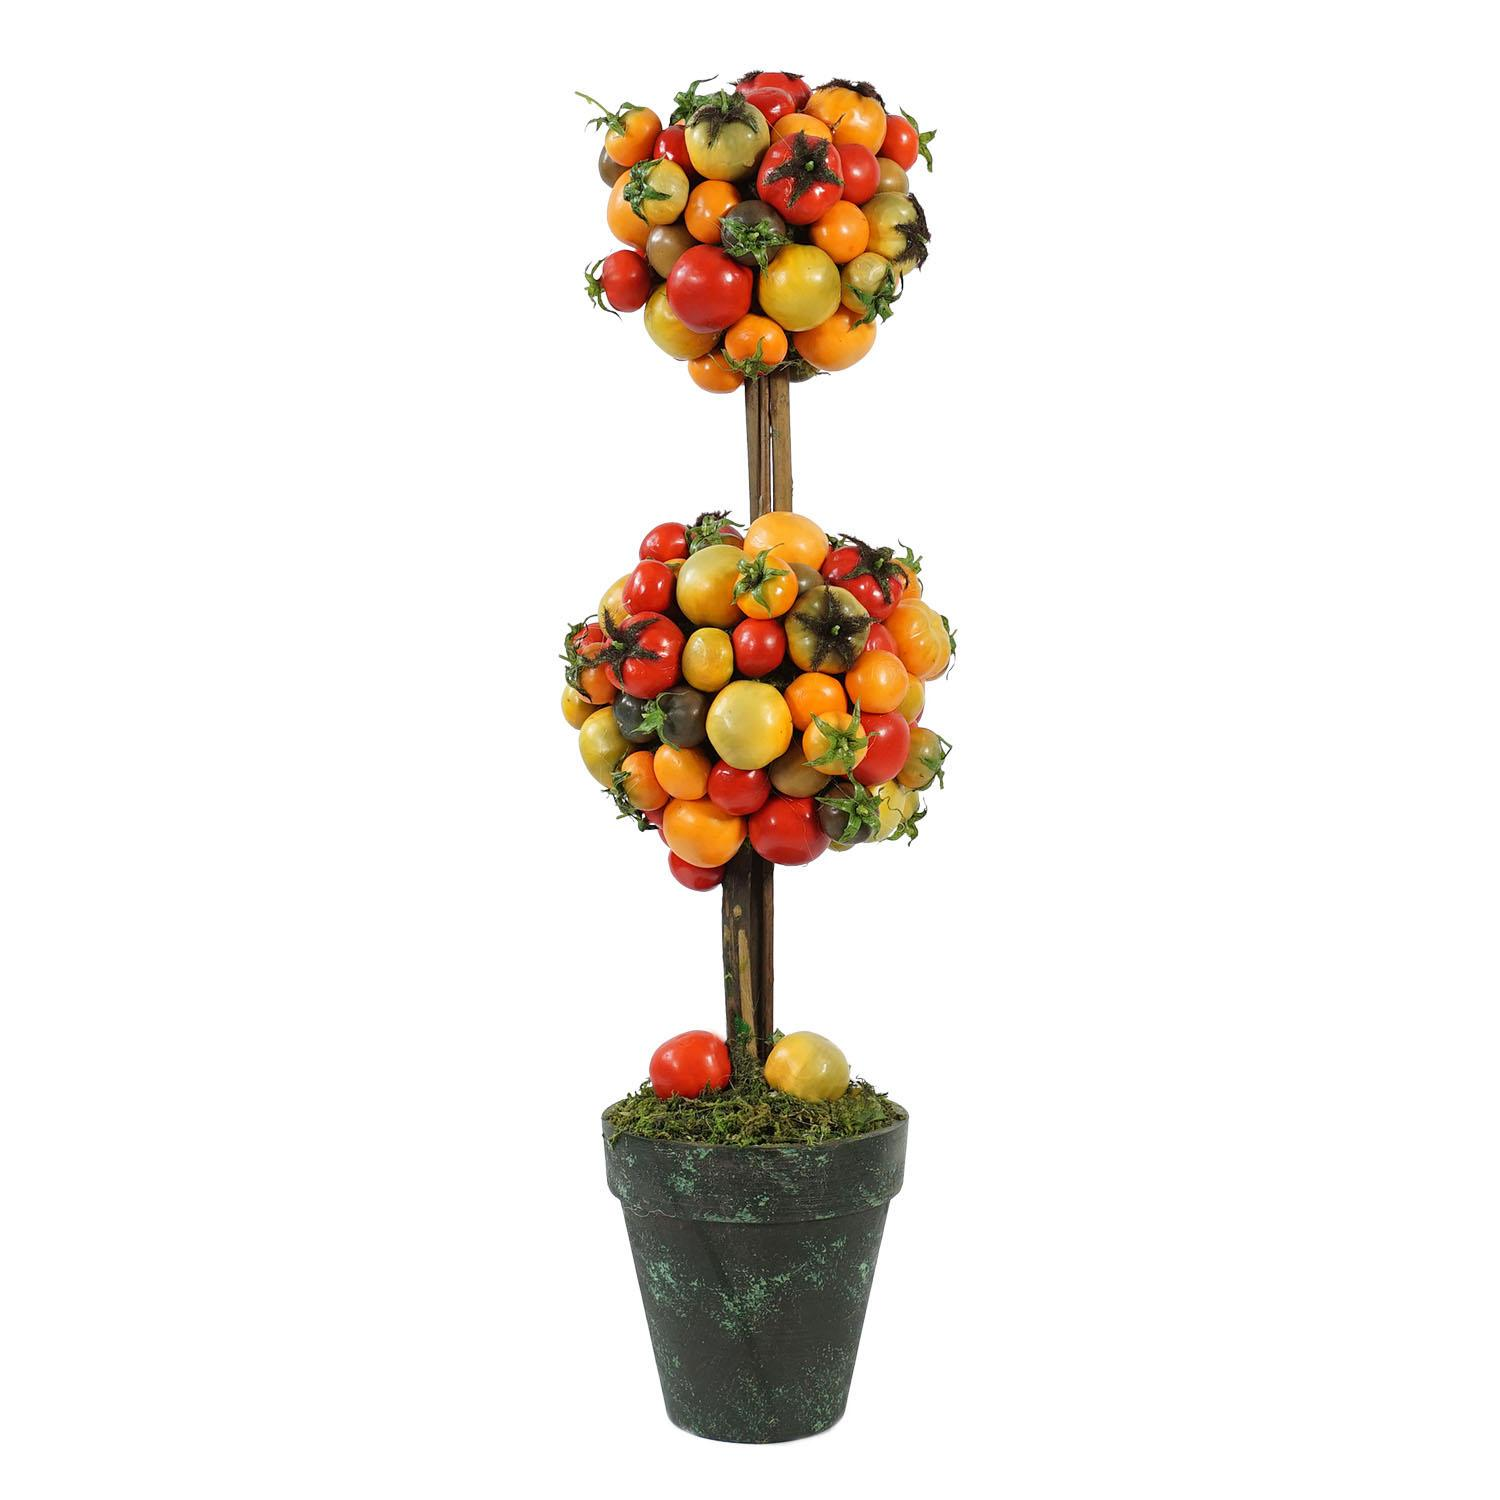 "21"" Decorative Potted Artificial Double Ball Tomato Topiary Tree"